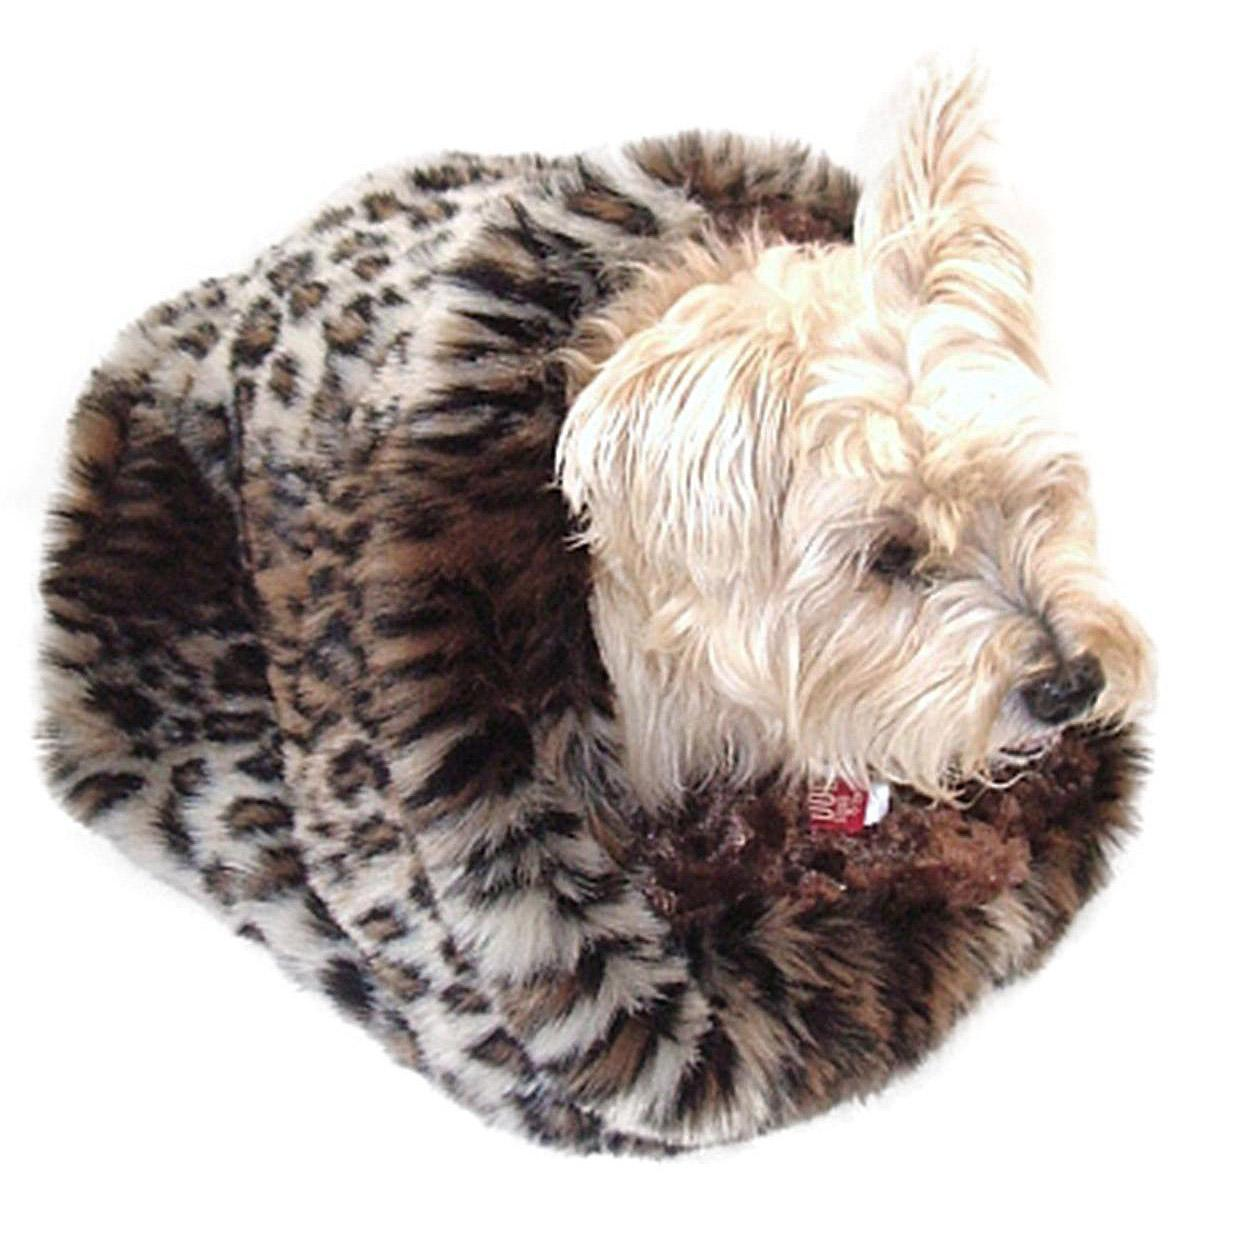 6a6286301955 3-in-1 Cozy Dog Cuddle Sack - Ocelot